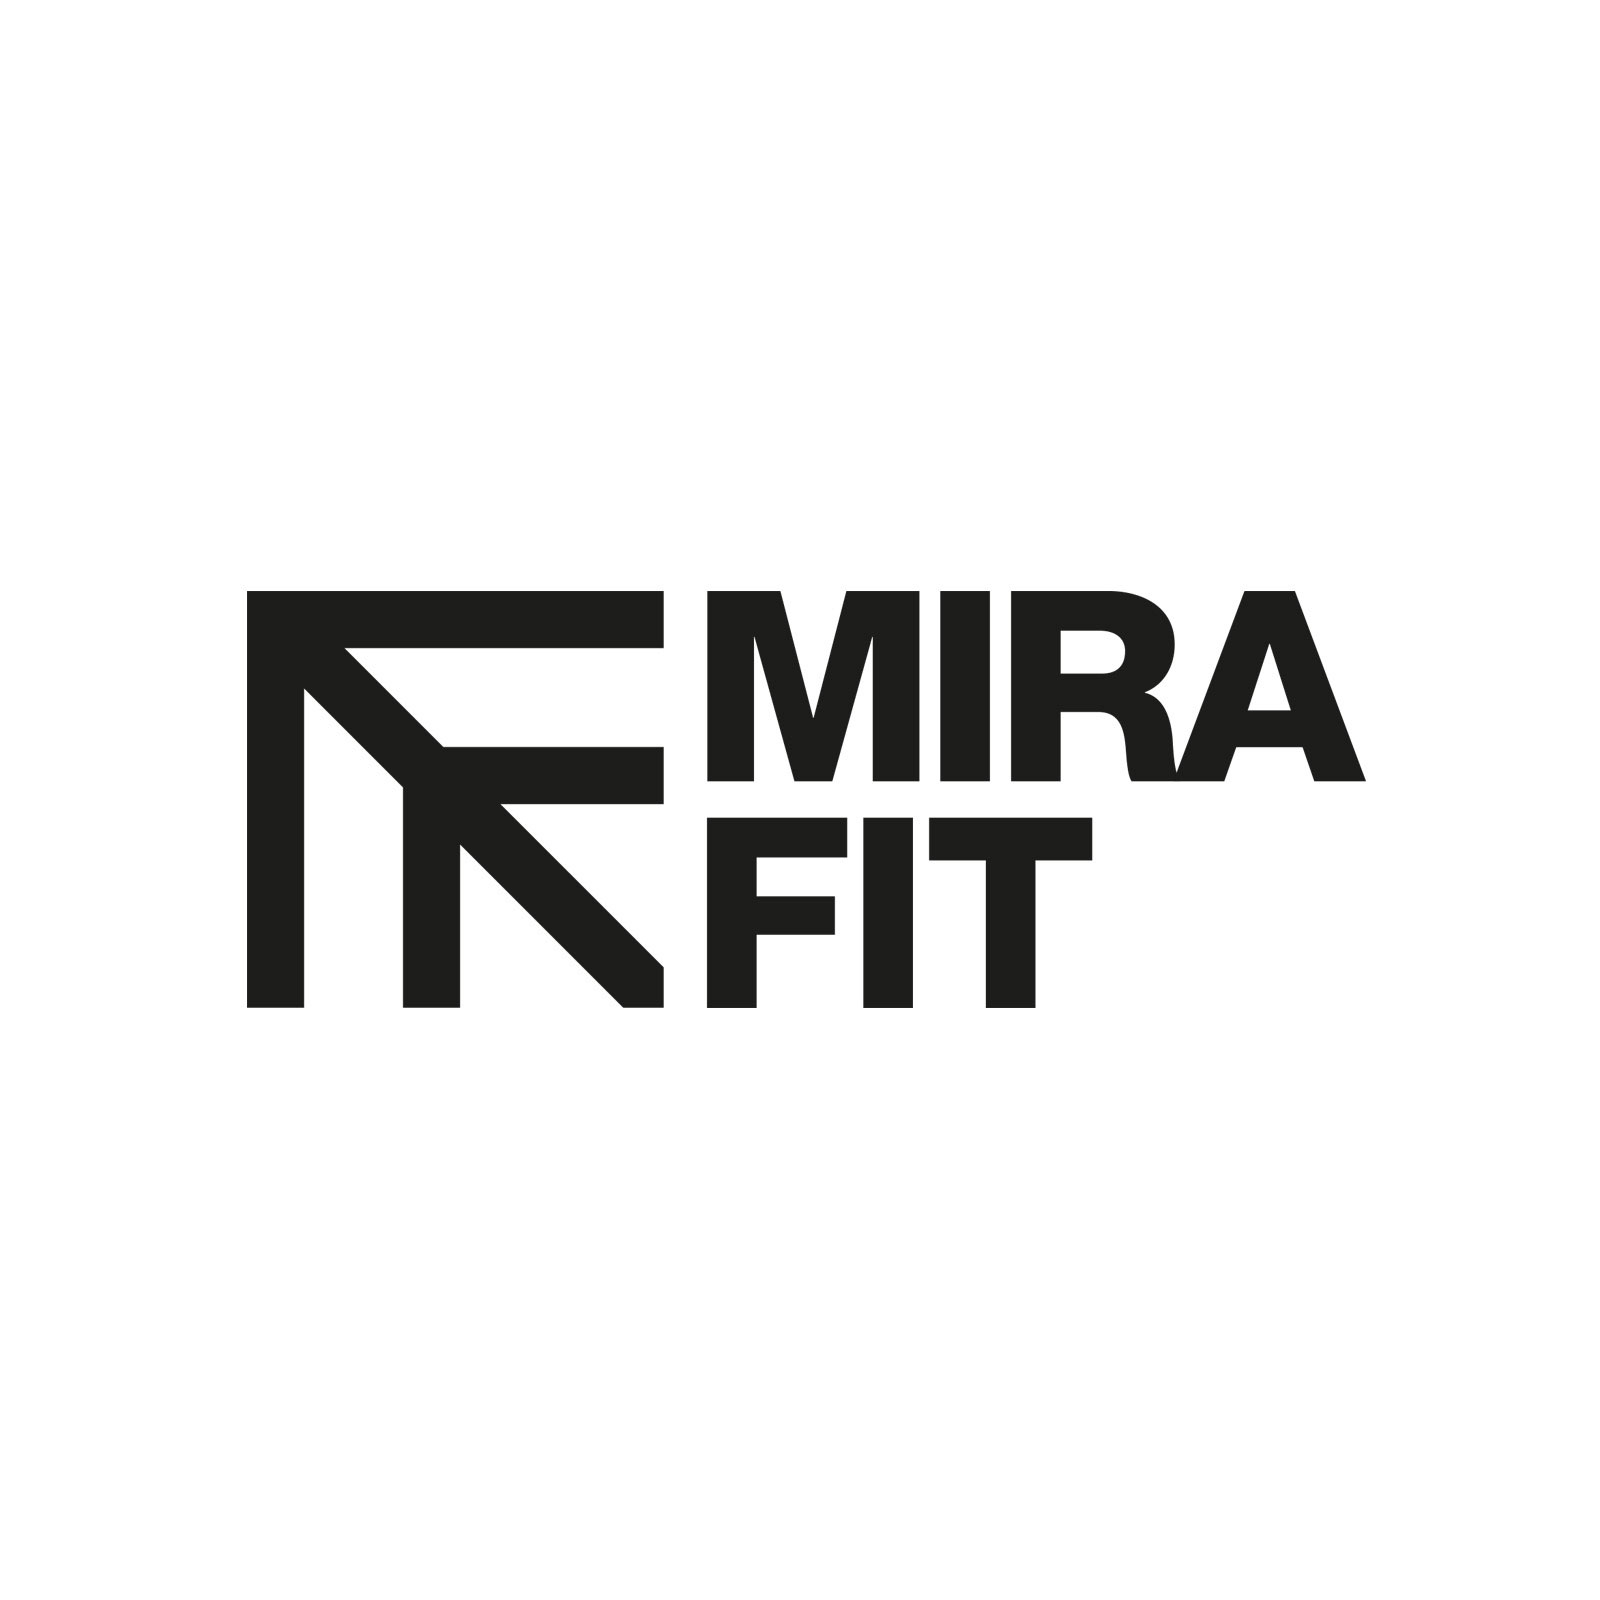 Mirafit Olympic Weightlifting Package with Graphic Overlaid